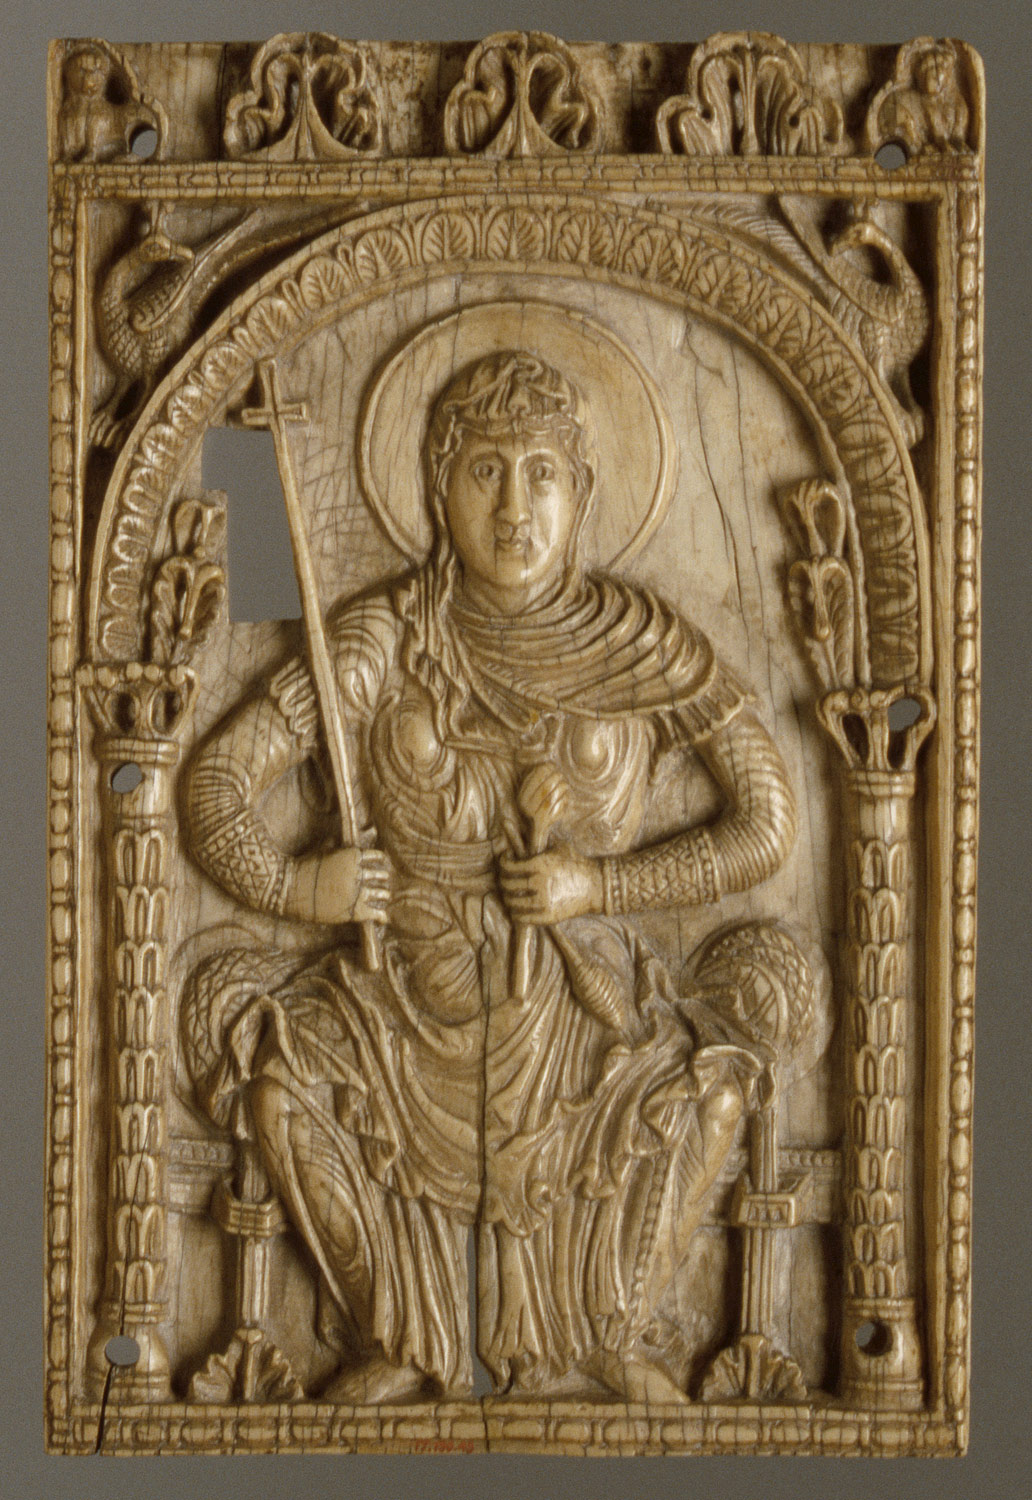 Plaque with the Virgin Mary as a Personification of the Church